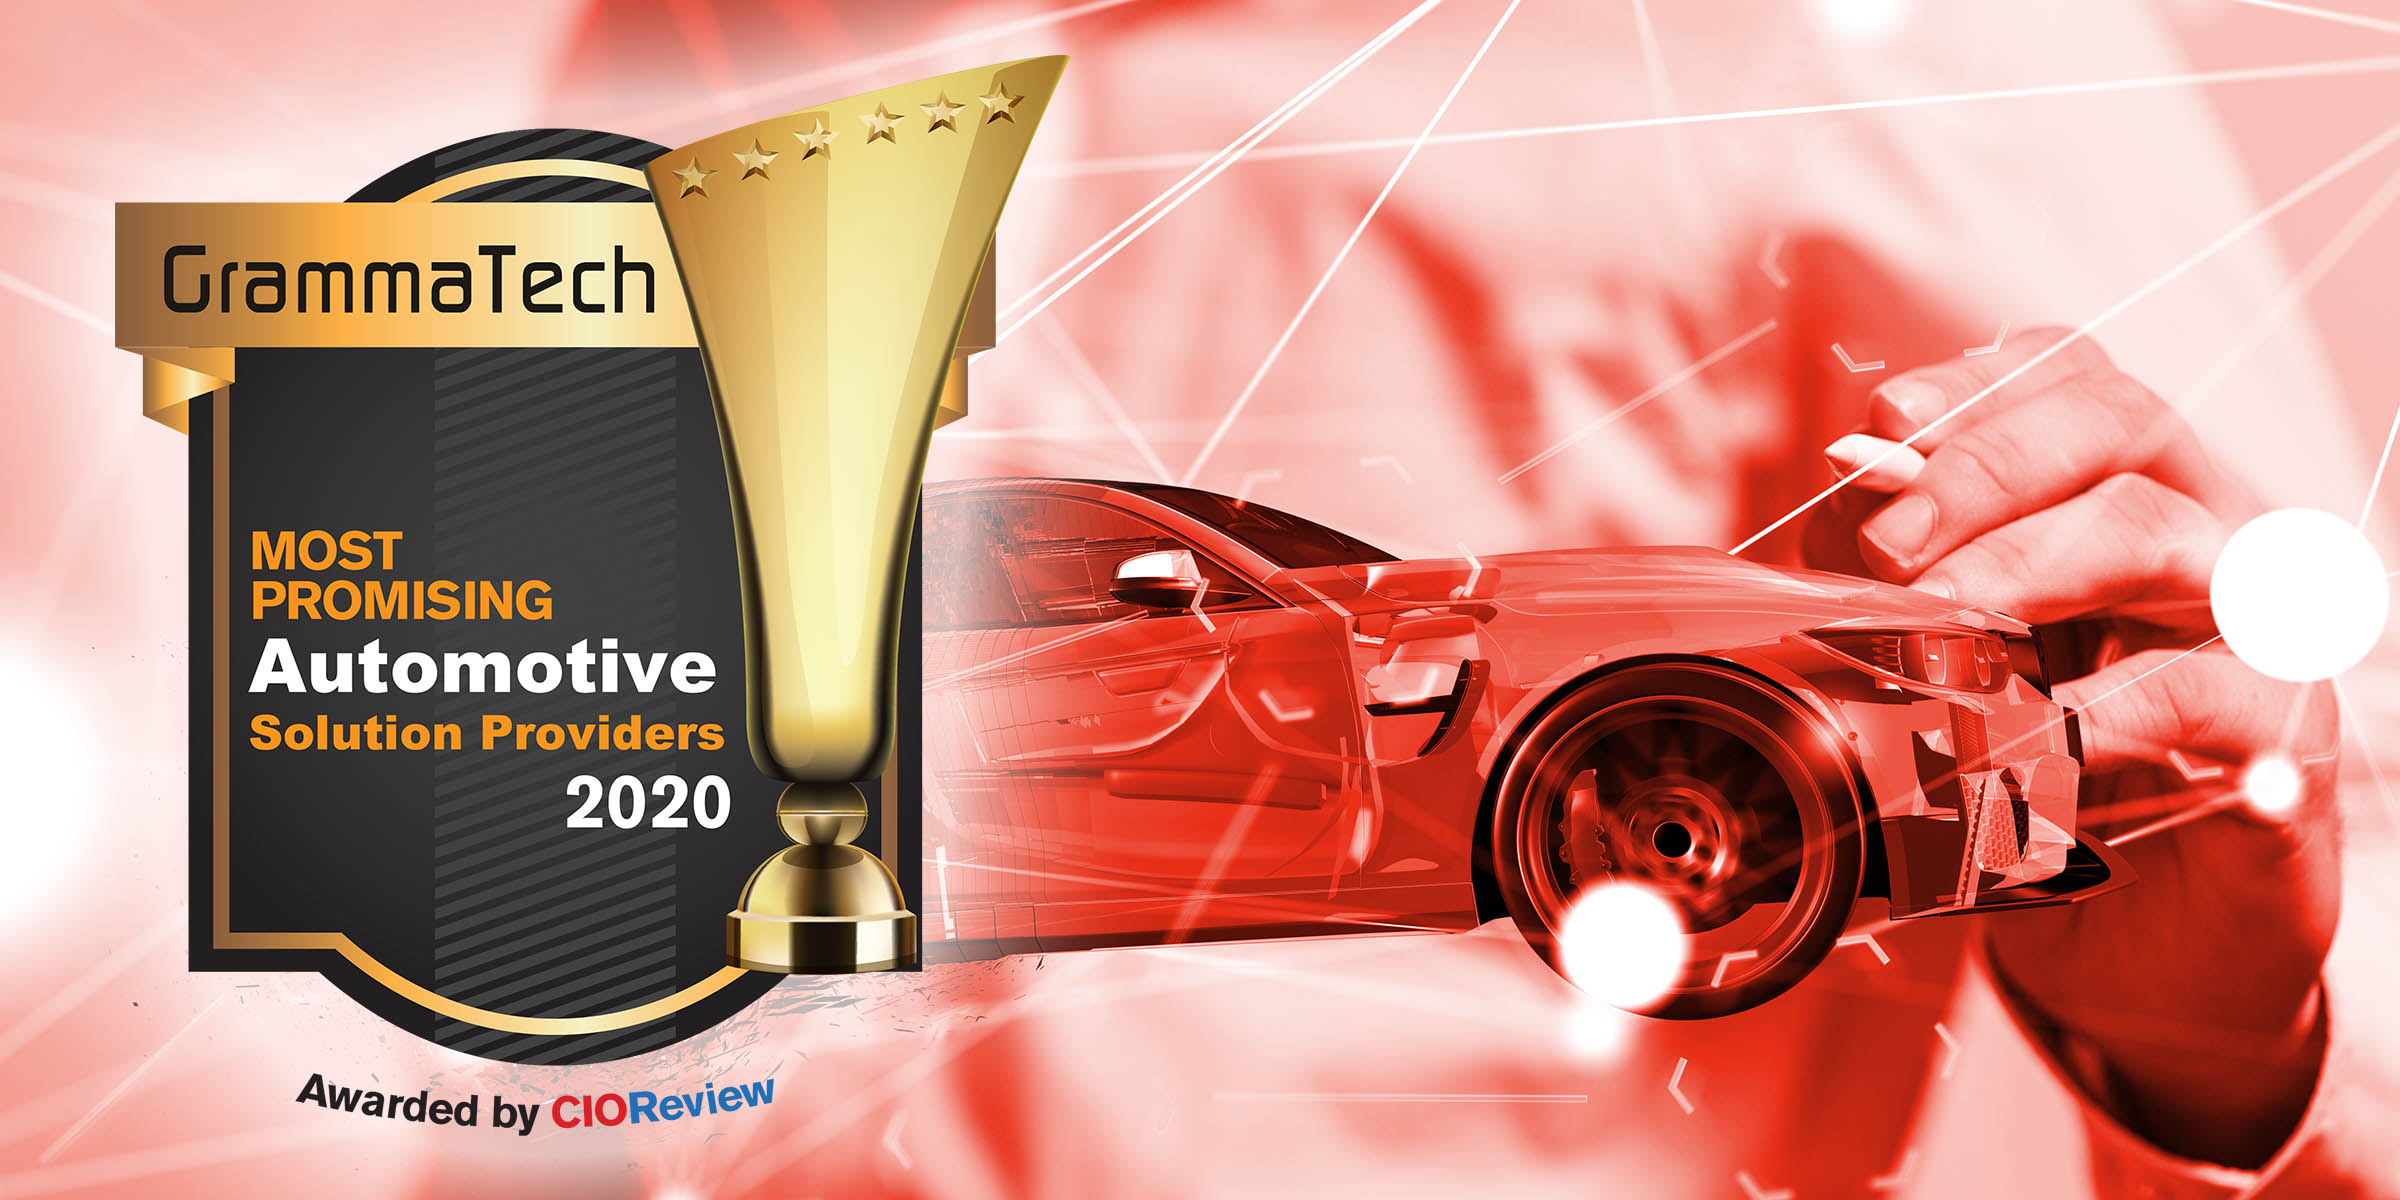 GrammaTech Named Top 20 Most Promising Automotive Solution Provider